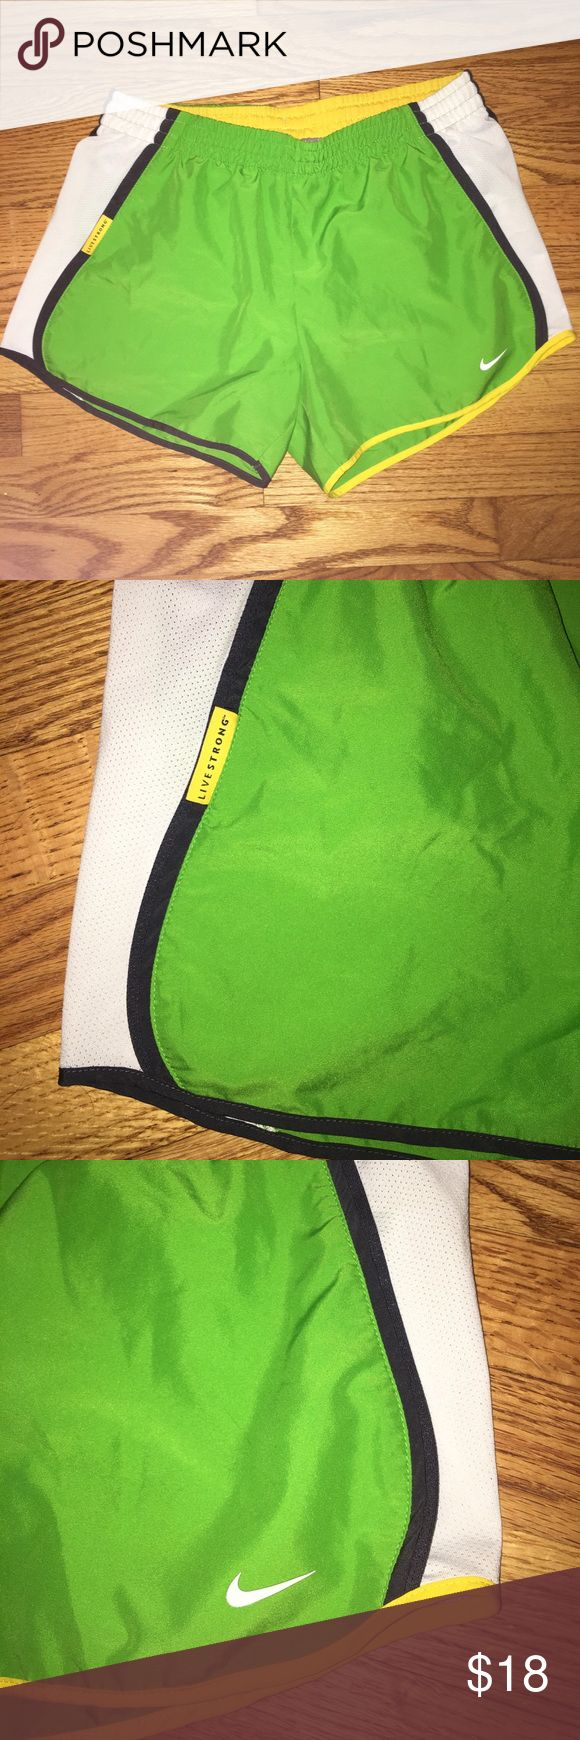 Women's Nike Livestrong running shorts Comfortable Dri-Fit running shorts with Livestrong logo. Only worn a few times. Nike Shorts